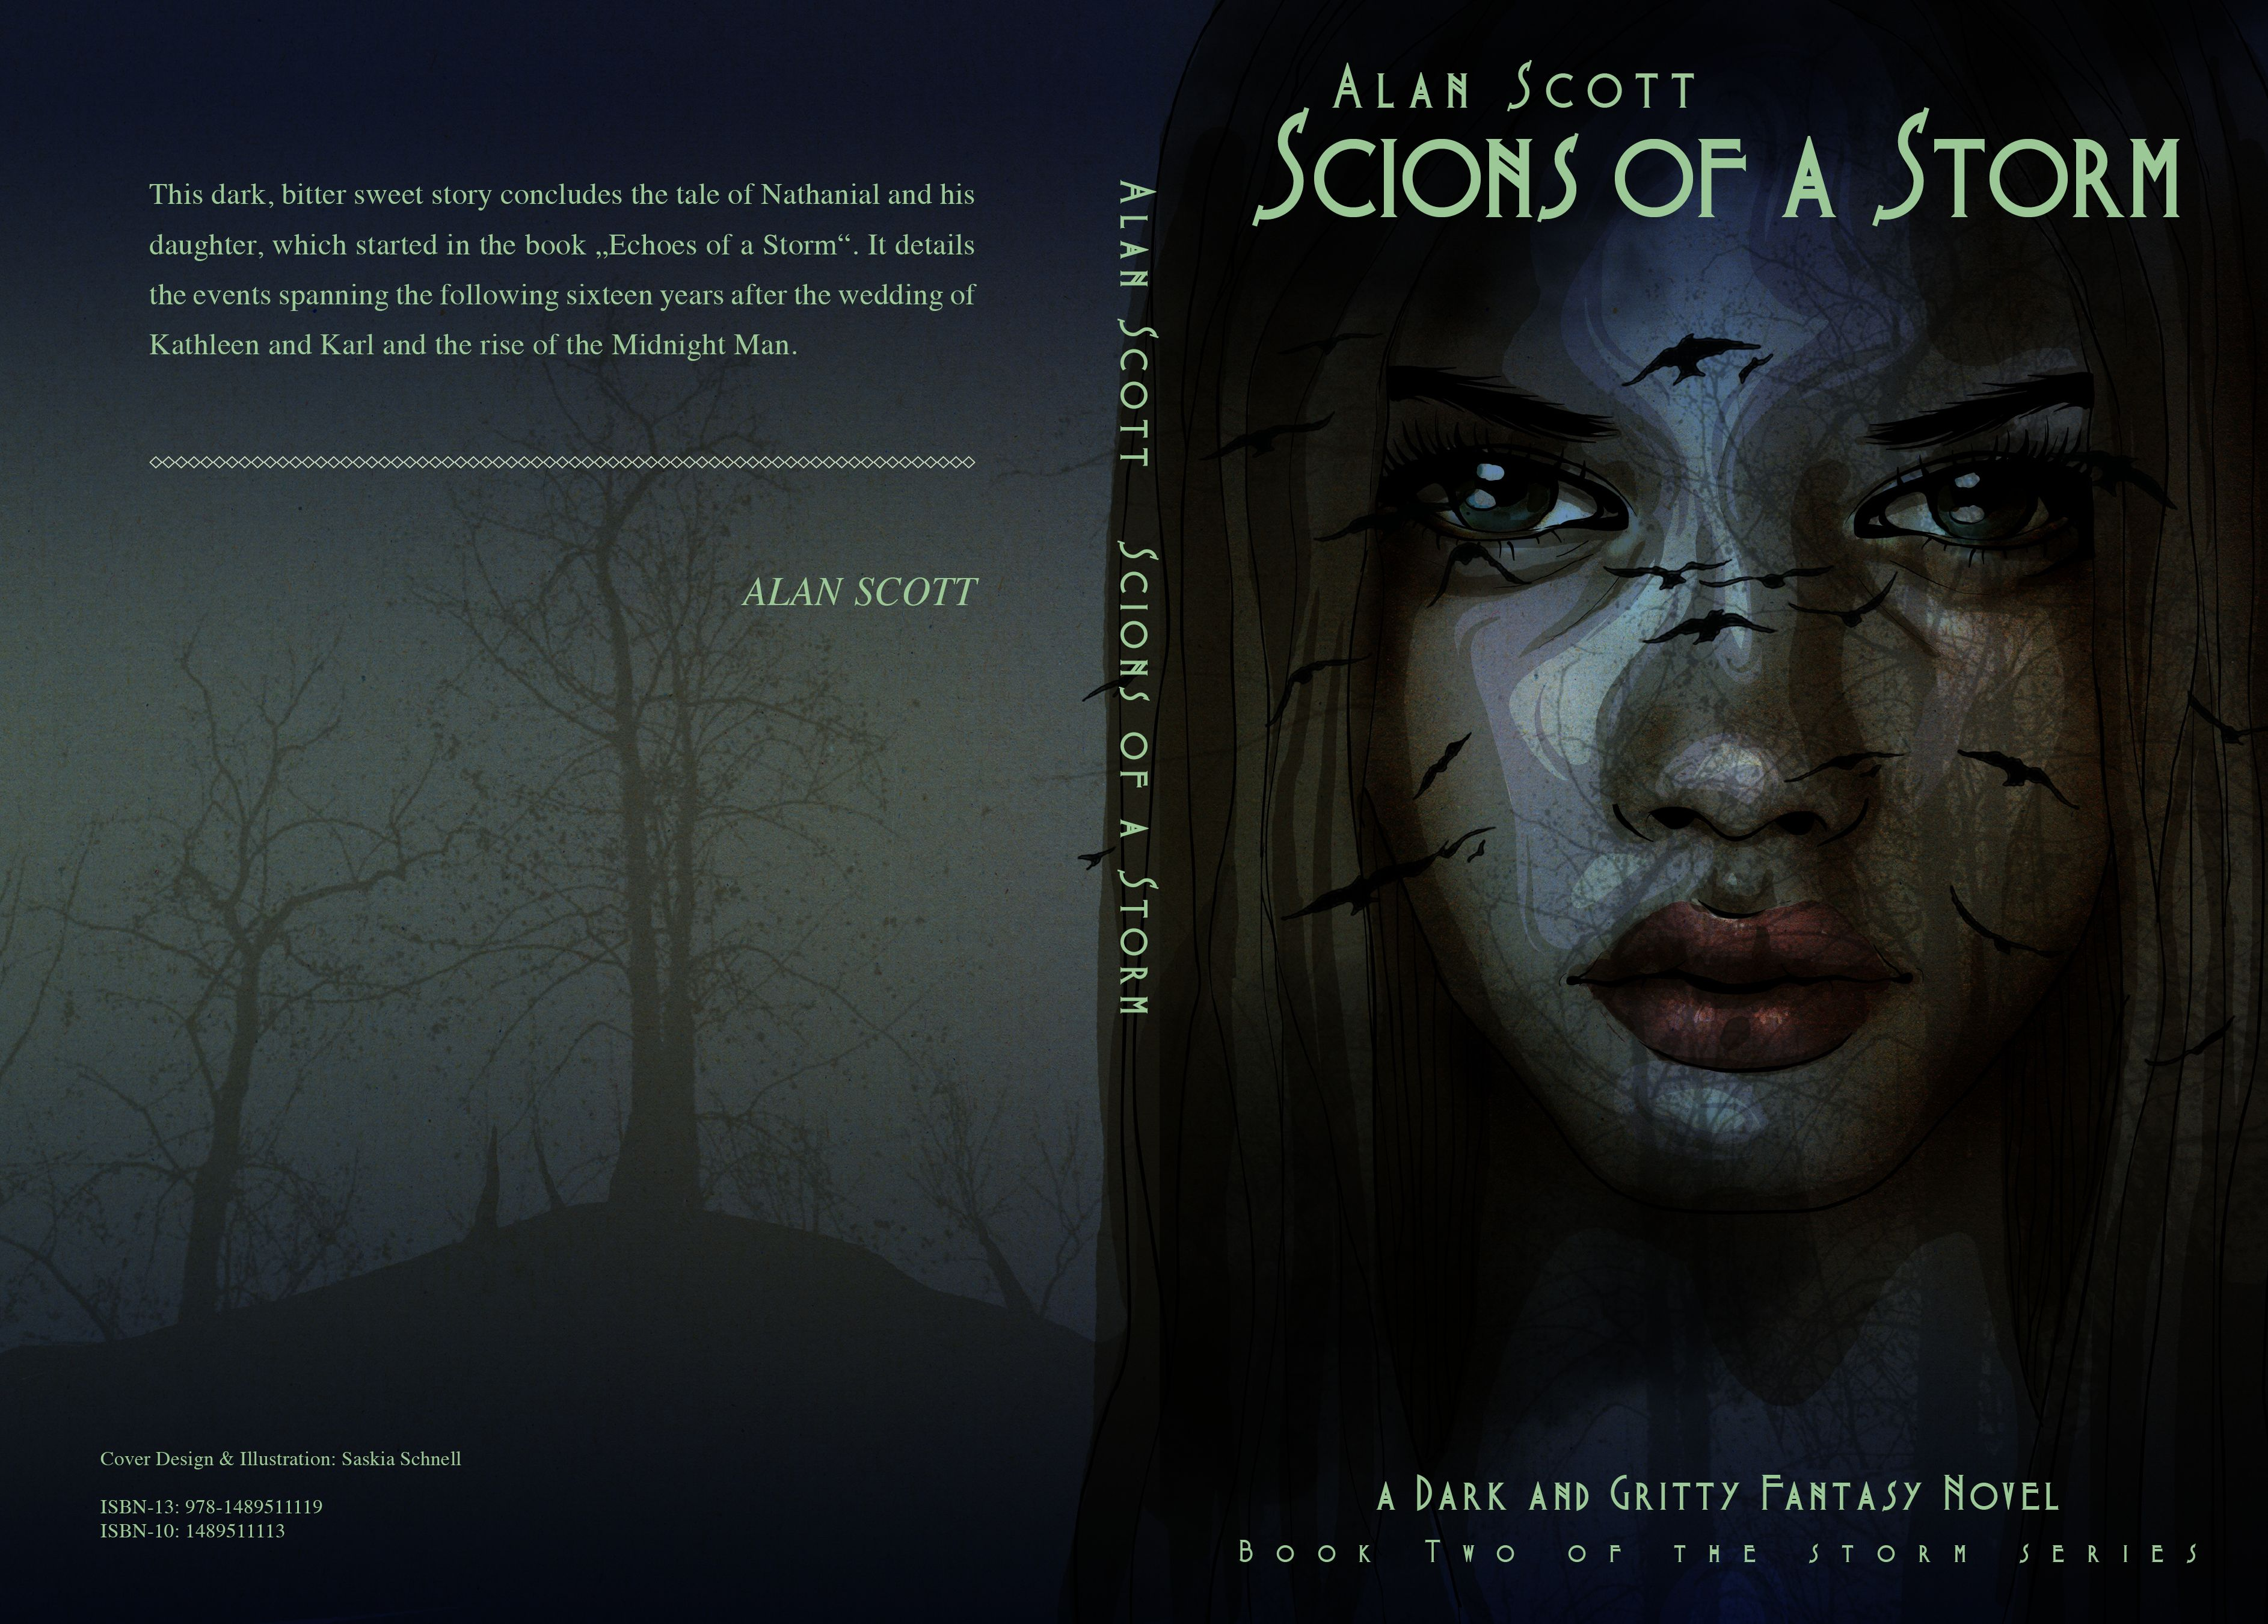 The second book in the Storm Series